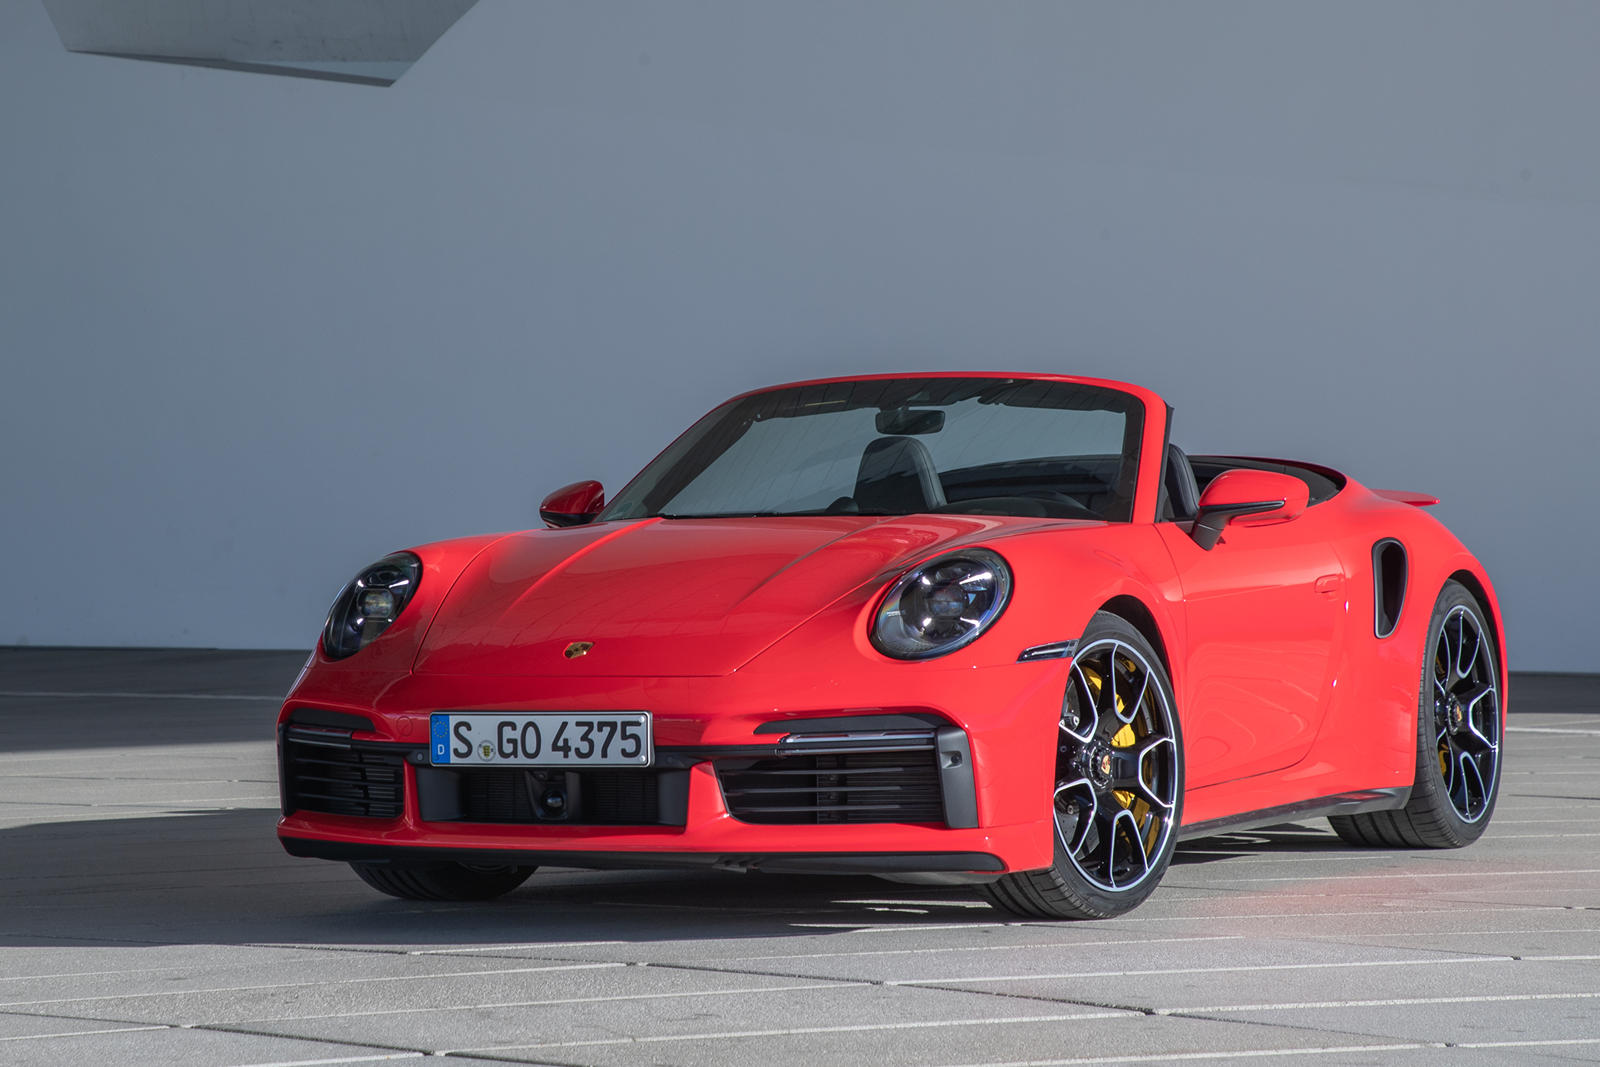 2021 Porsche 911 Turbo Cabriolet Review Trims Specs Price New Interior Features Exterior Design And Specifications Carbuzz